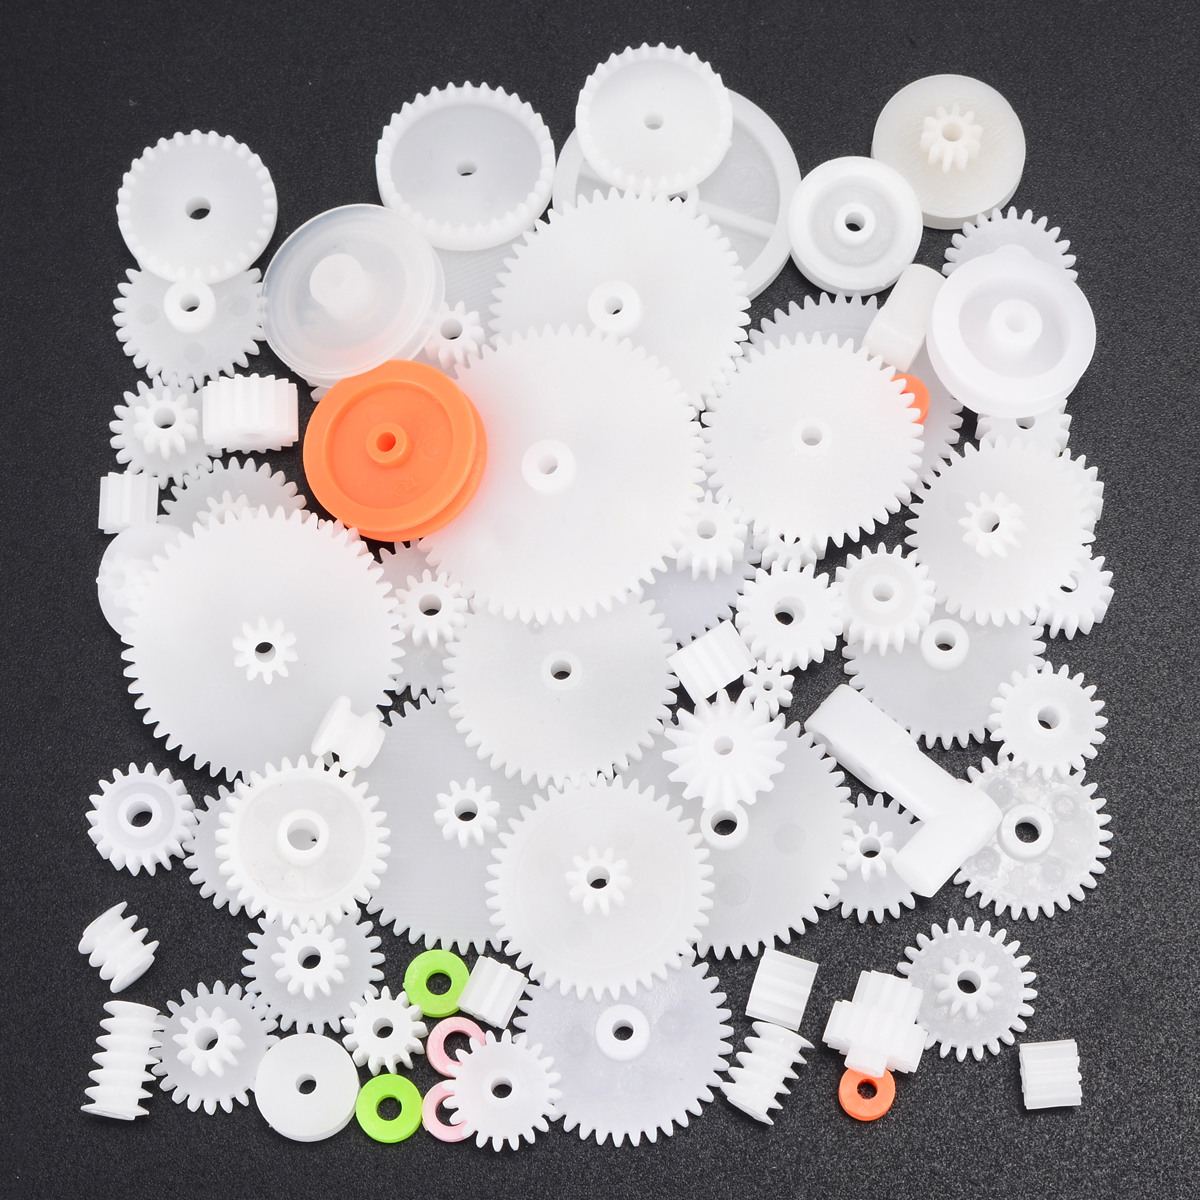 64 Kinds Plastic Gear Plastic Shaft Single Double Layer Crown Worm Gears M0.5 Robot Parts For DIY Tools Accessories